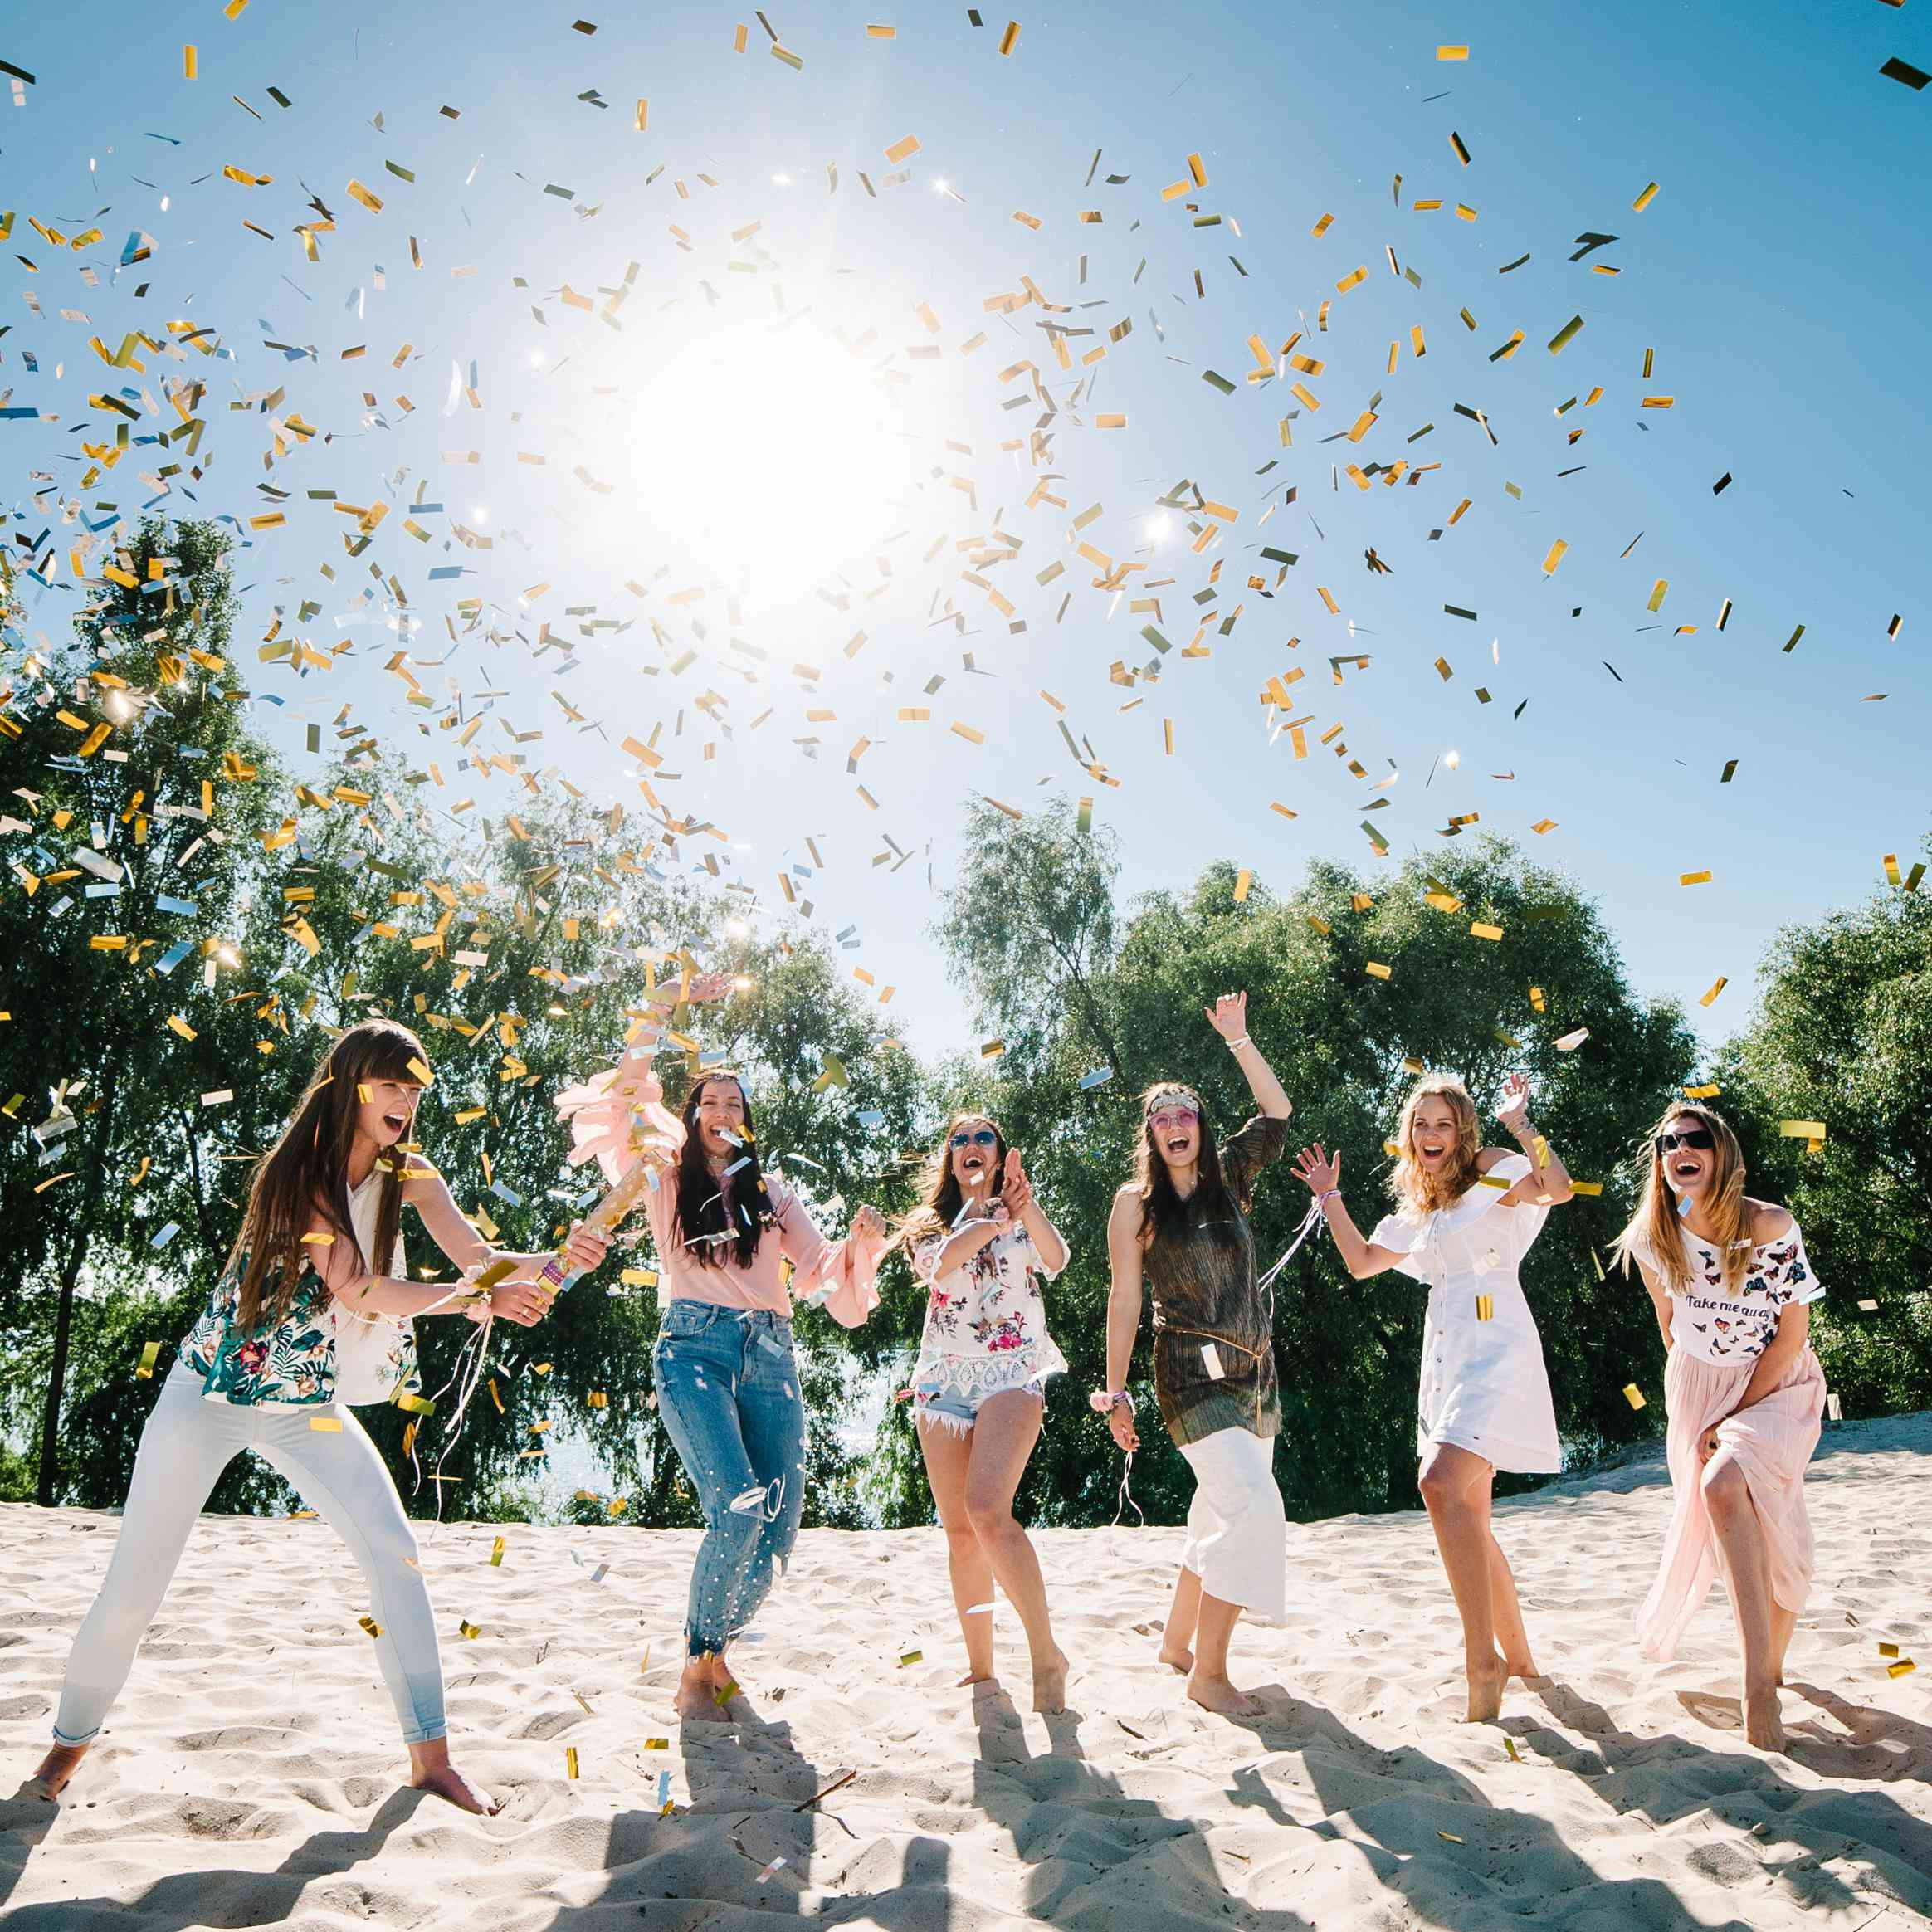 18 Instagram-Worthy Bachelorette Party Ideas